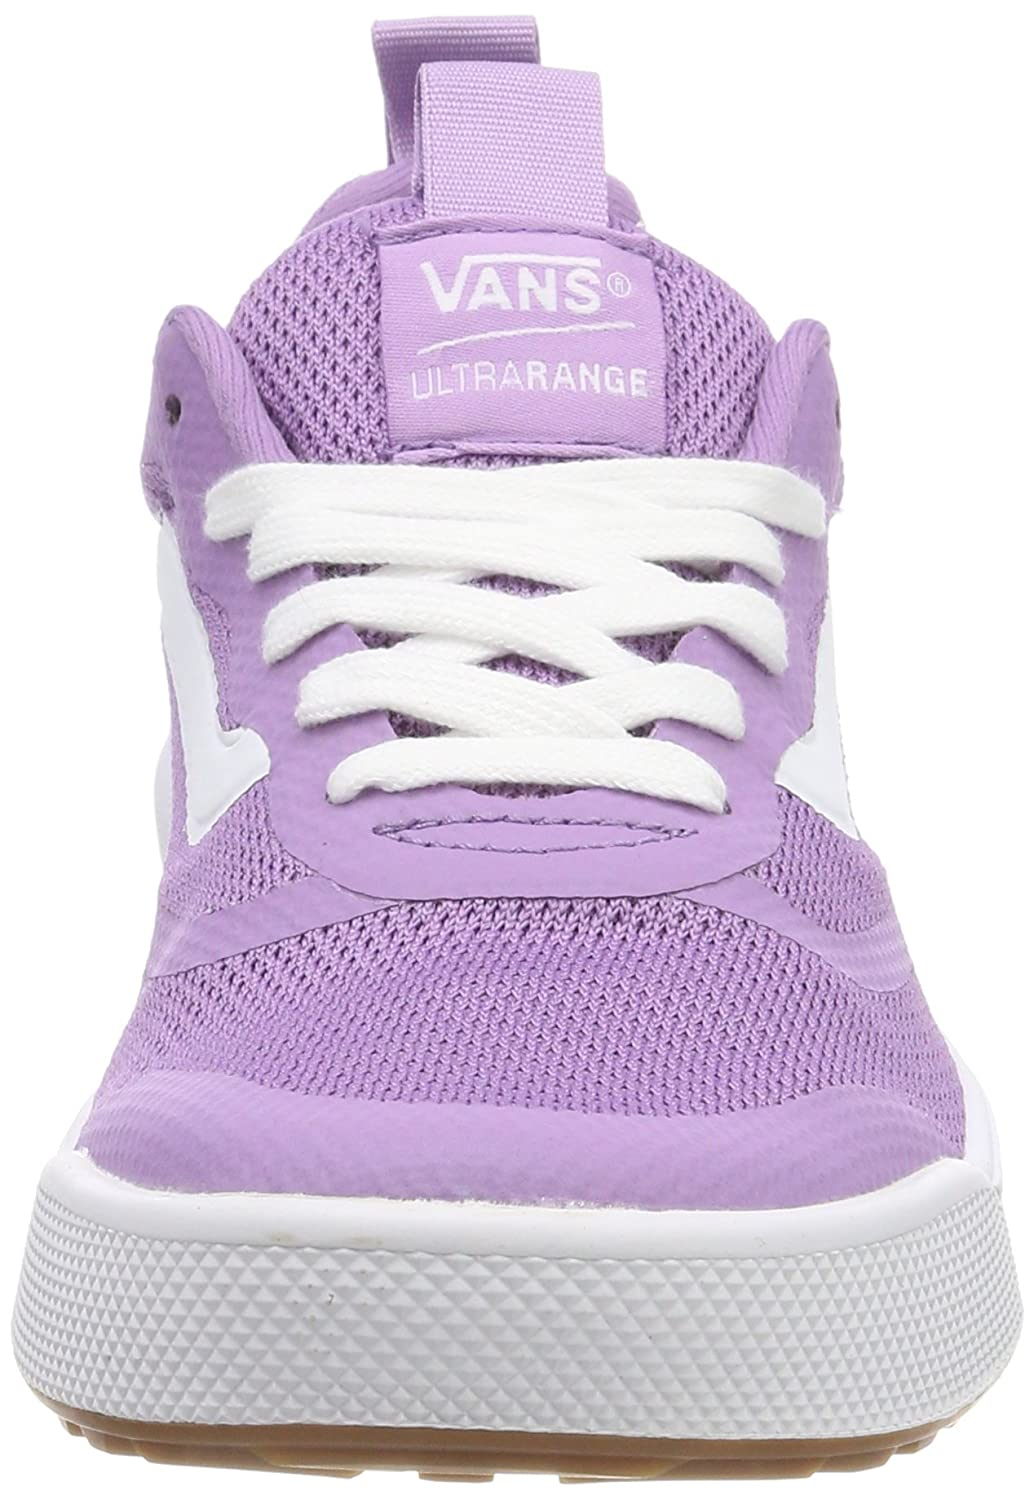 9138552b1ac Vans Women s Ultrarange Rapidweld Trainers  Amazon.co.uk  Shoes   Bags